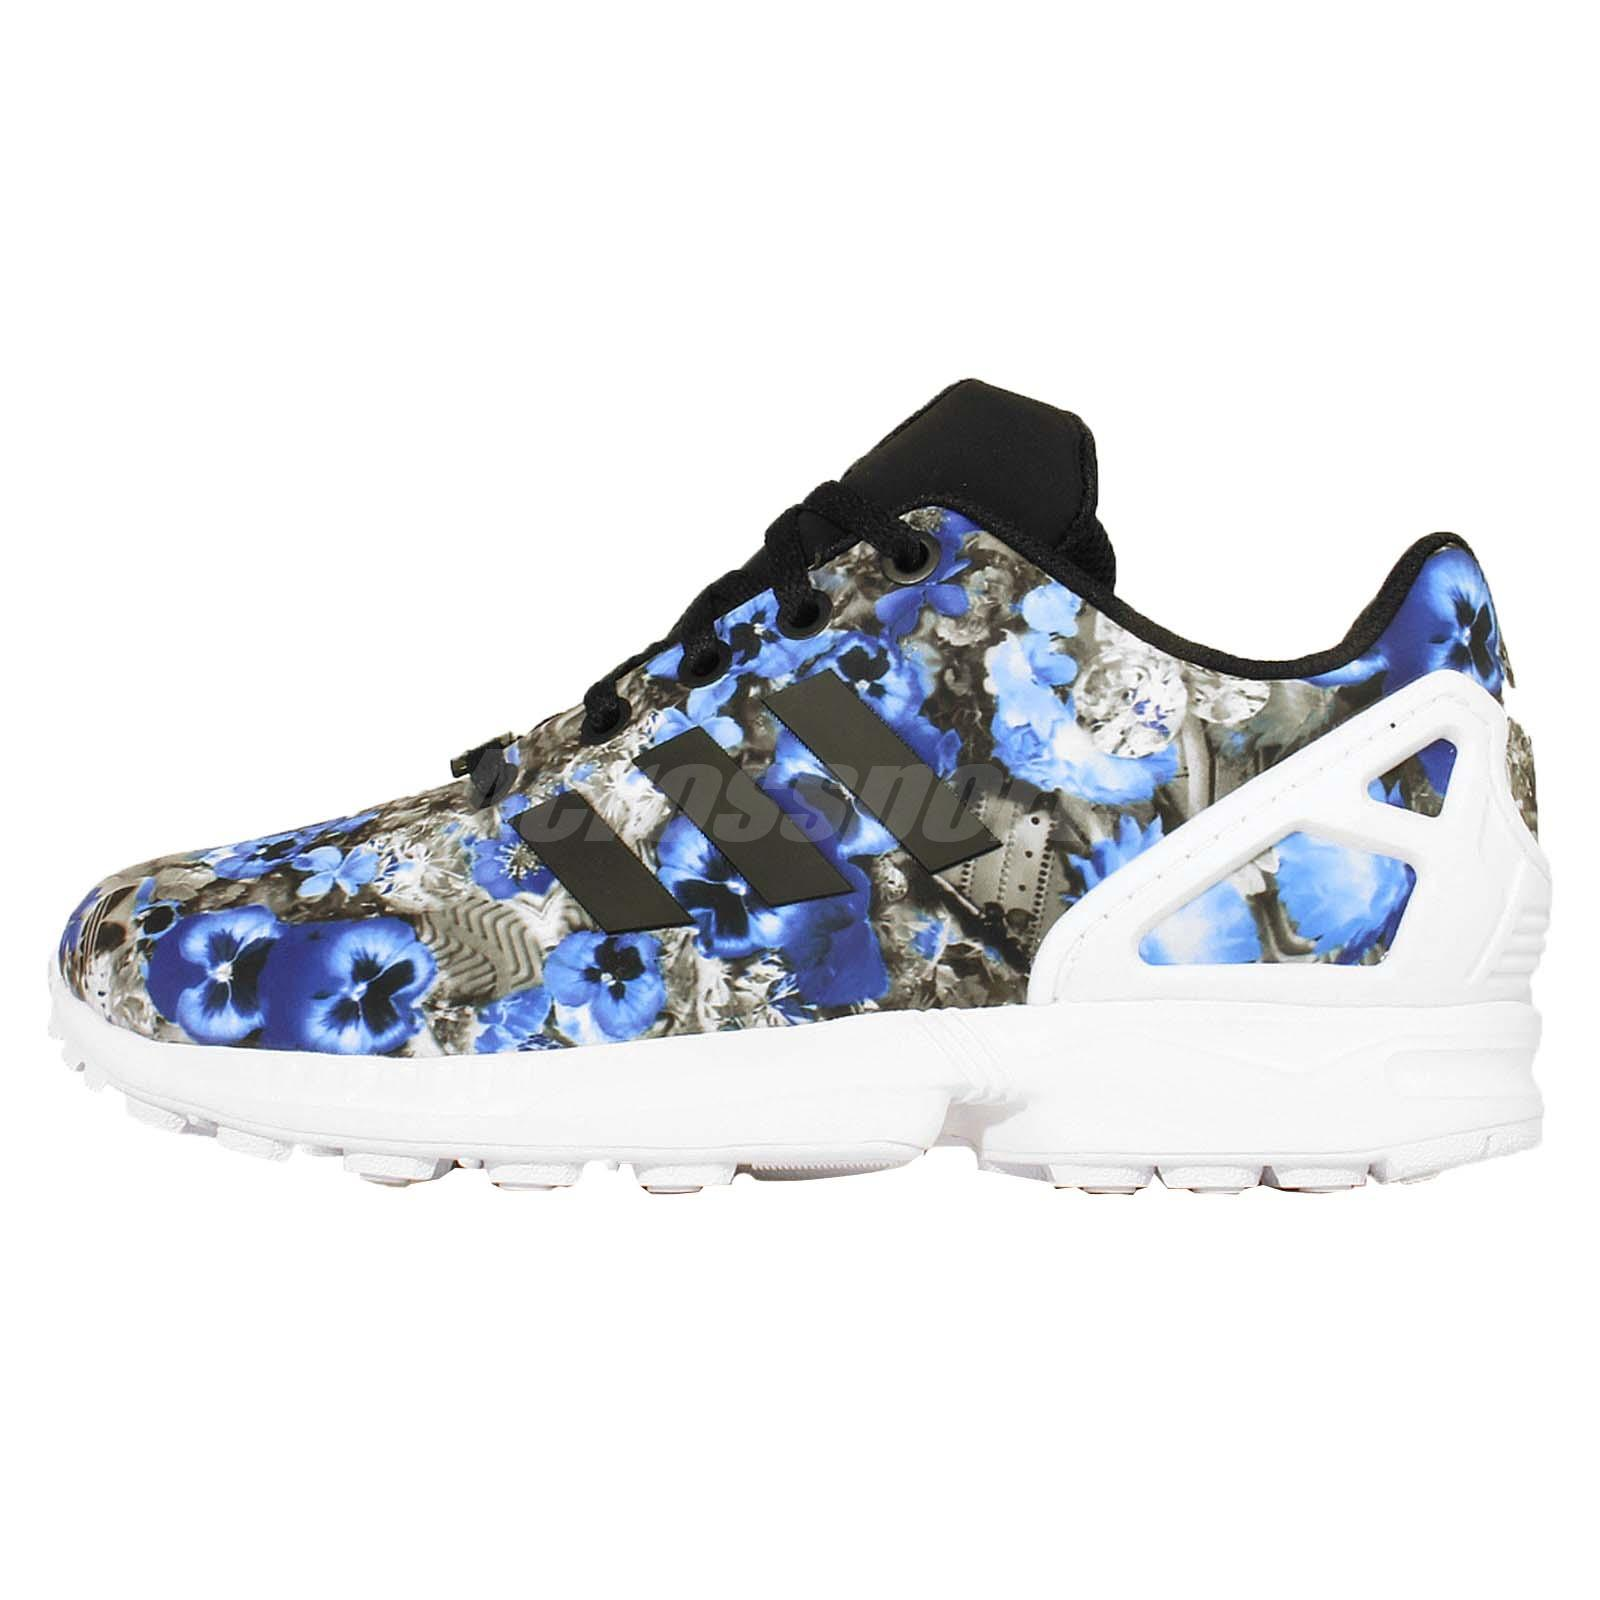 Adidas Flux For Kids